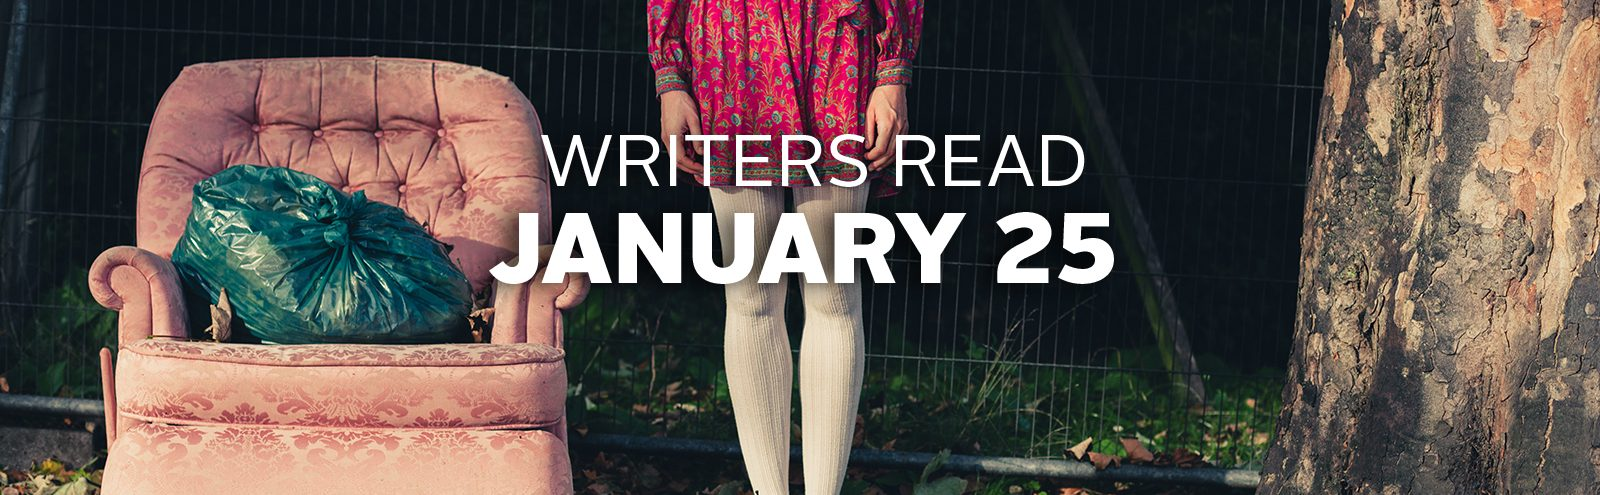 WritersRead will be held January 25, 2019